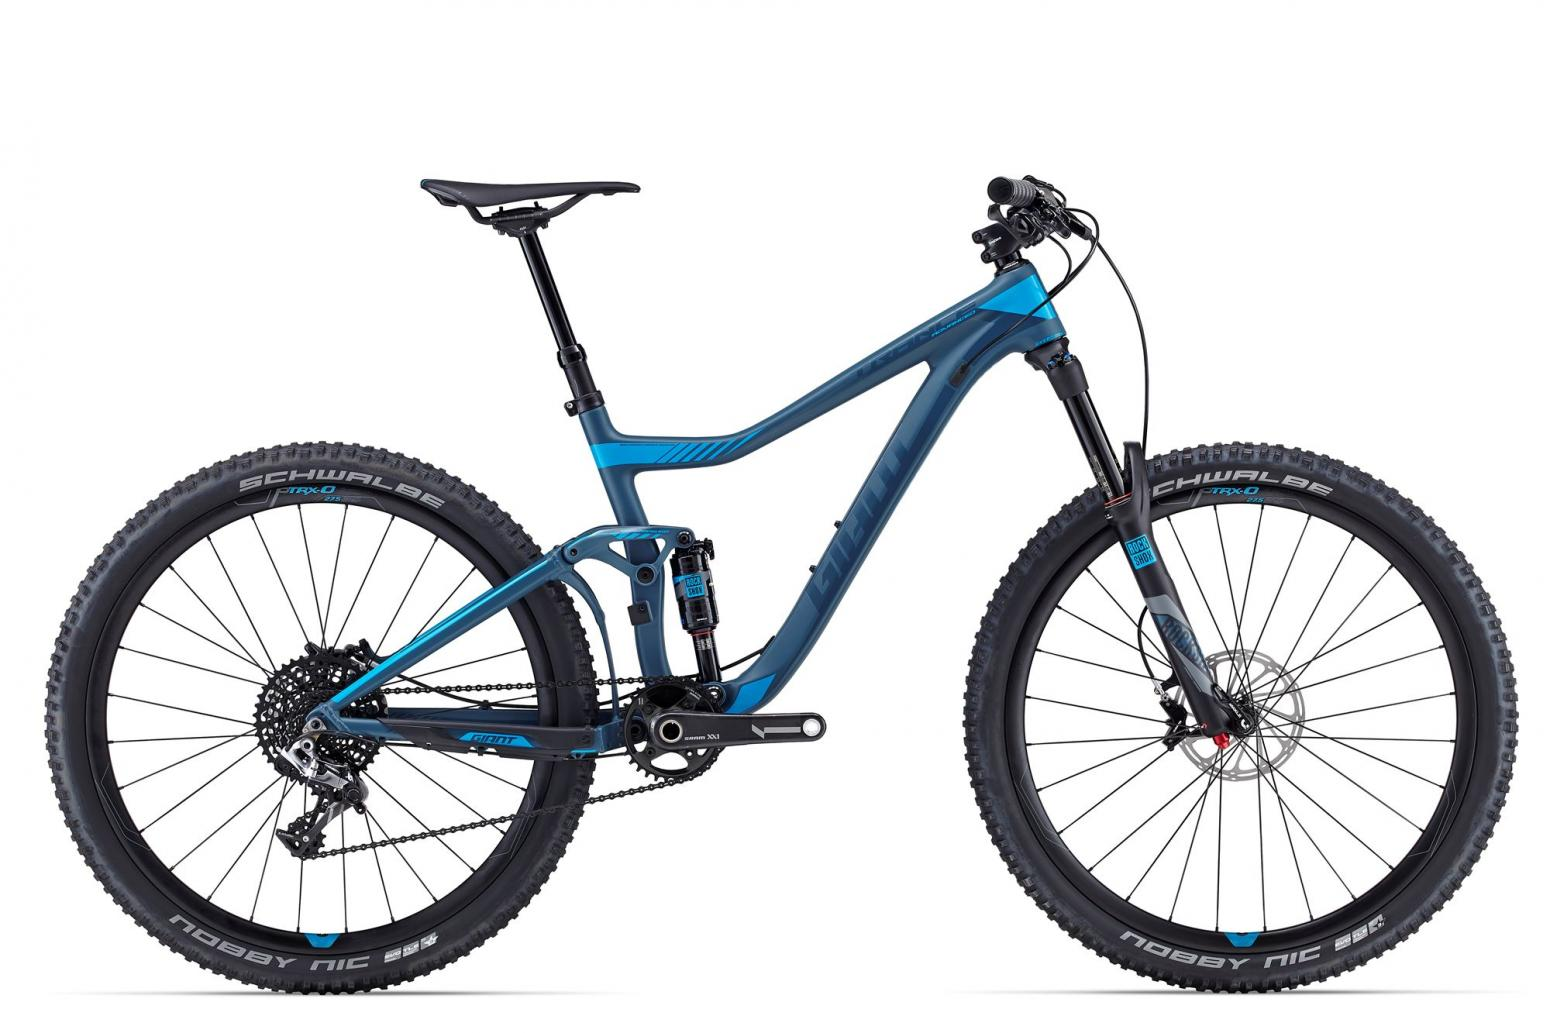 Giant MTB Allmountain/Trail Trance Advanced 27.5 0 2016